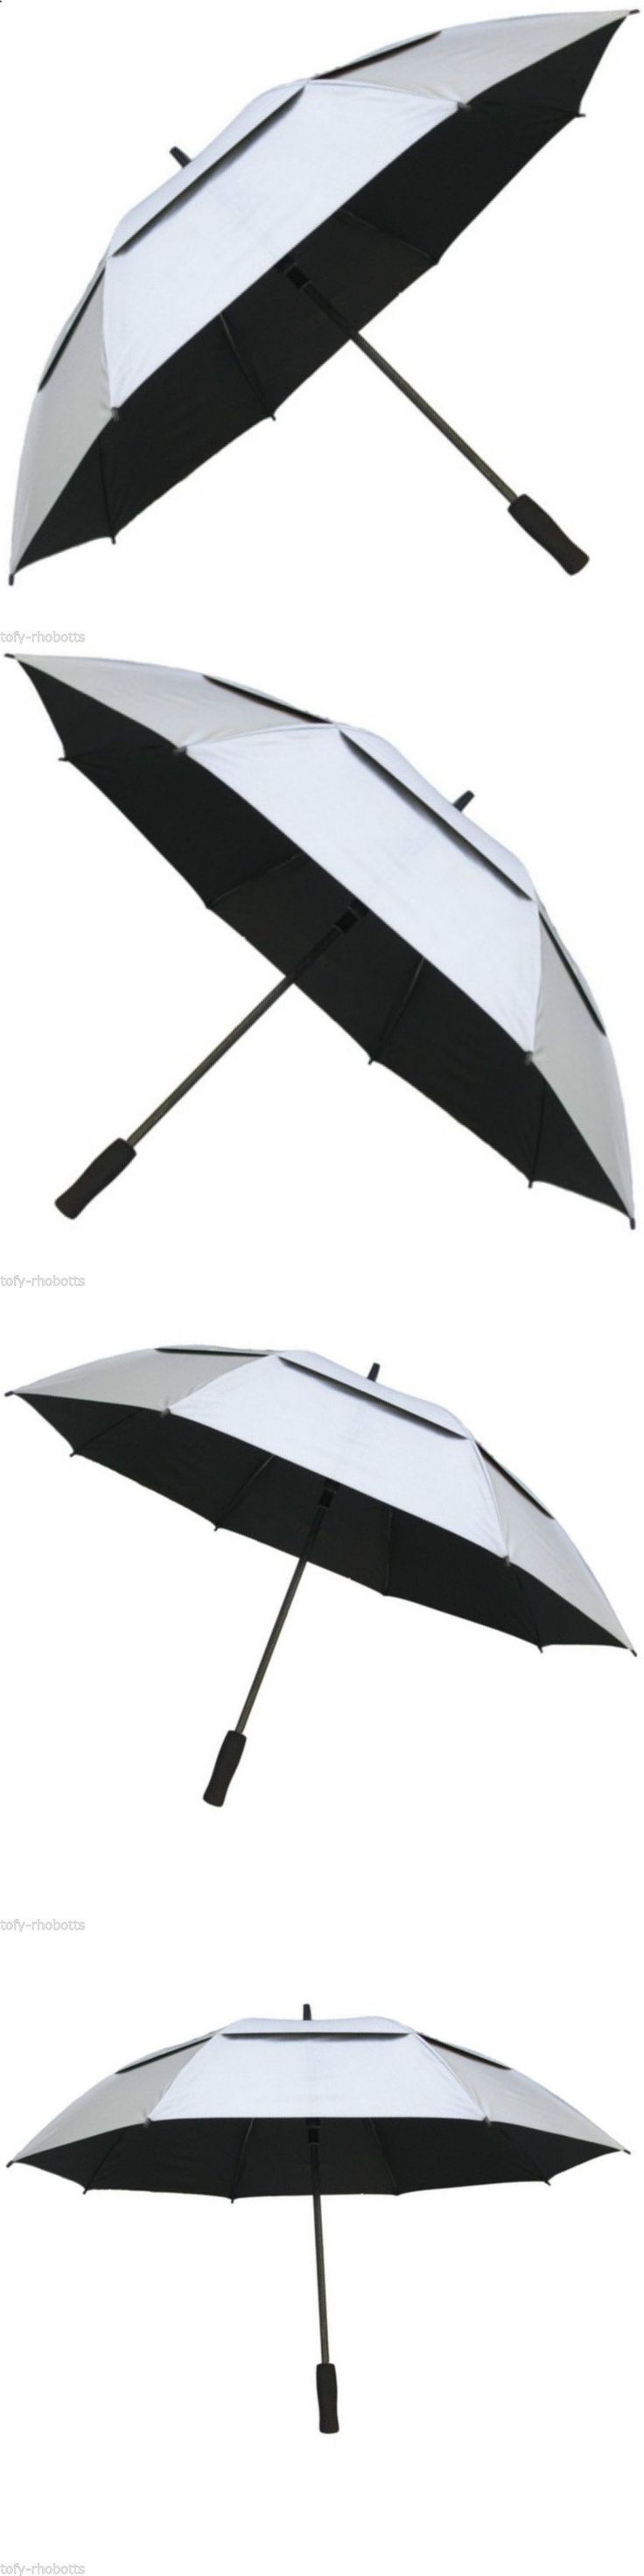 Golf Umbrellas 18933: Golf Umbrella 62 Inch Double Canopy Windproof Auto Open Silver Black Sport Park -> BUY IT NOW ONLY: $33.99 on eBay!